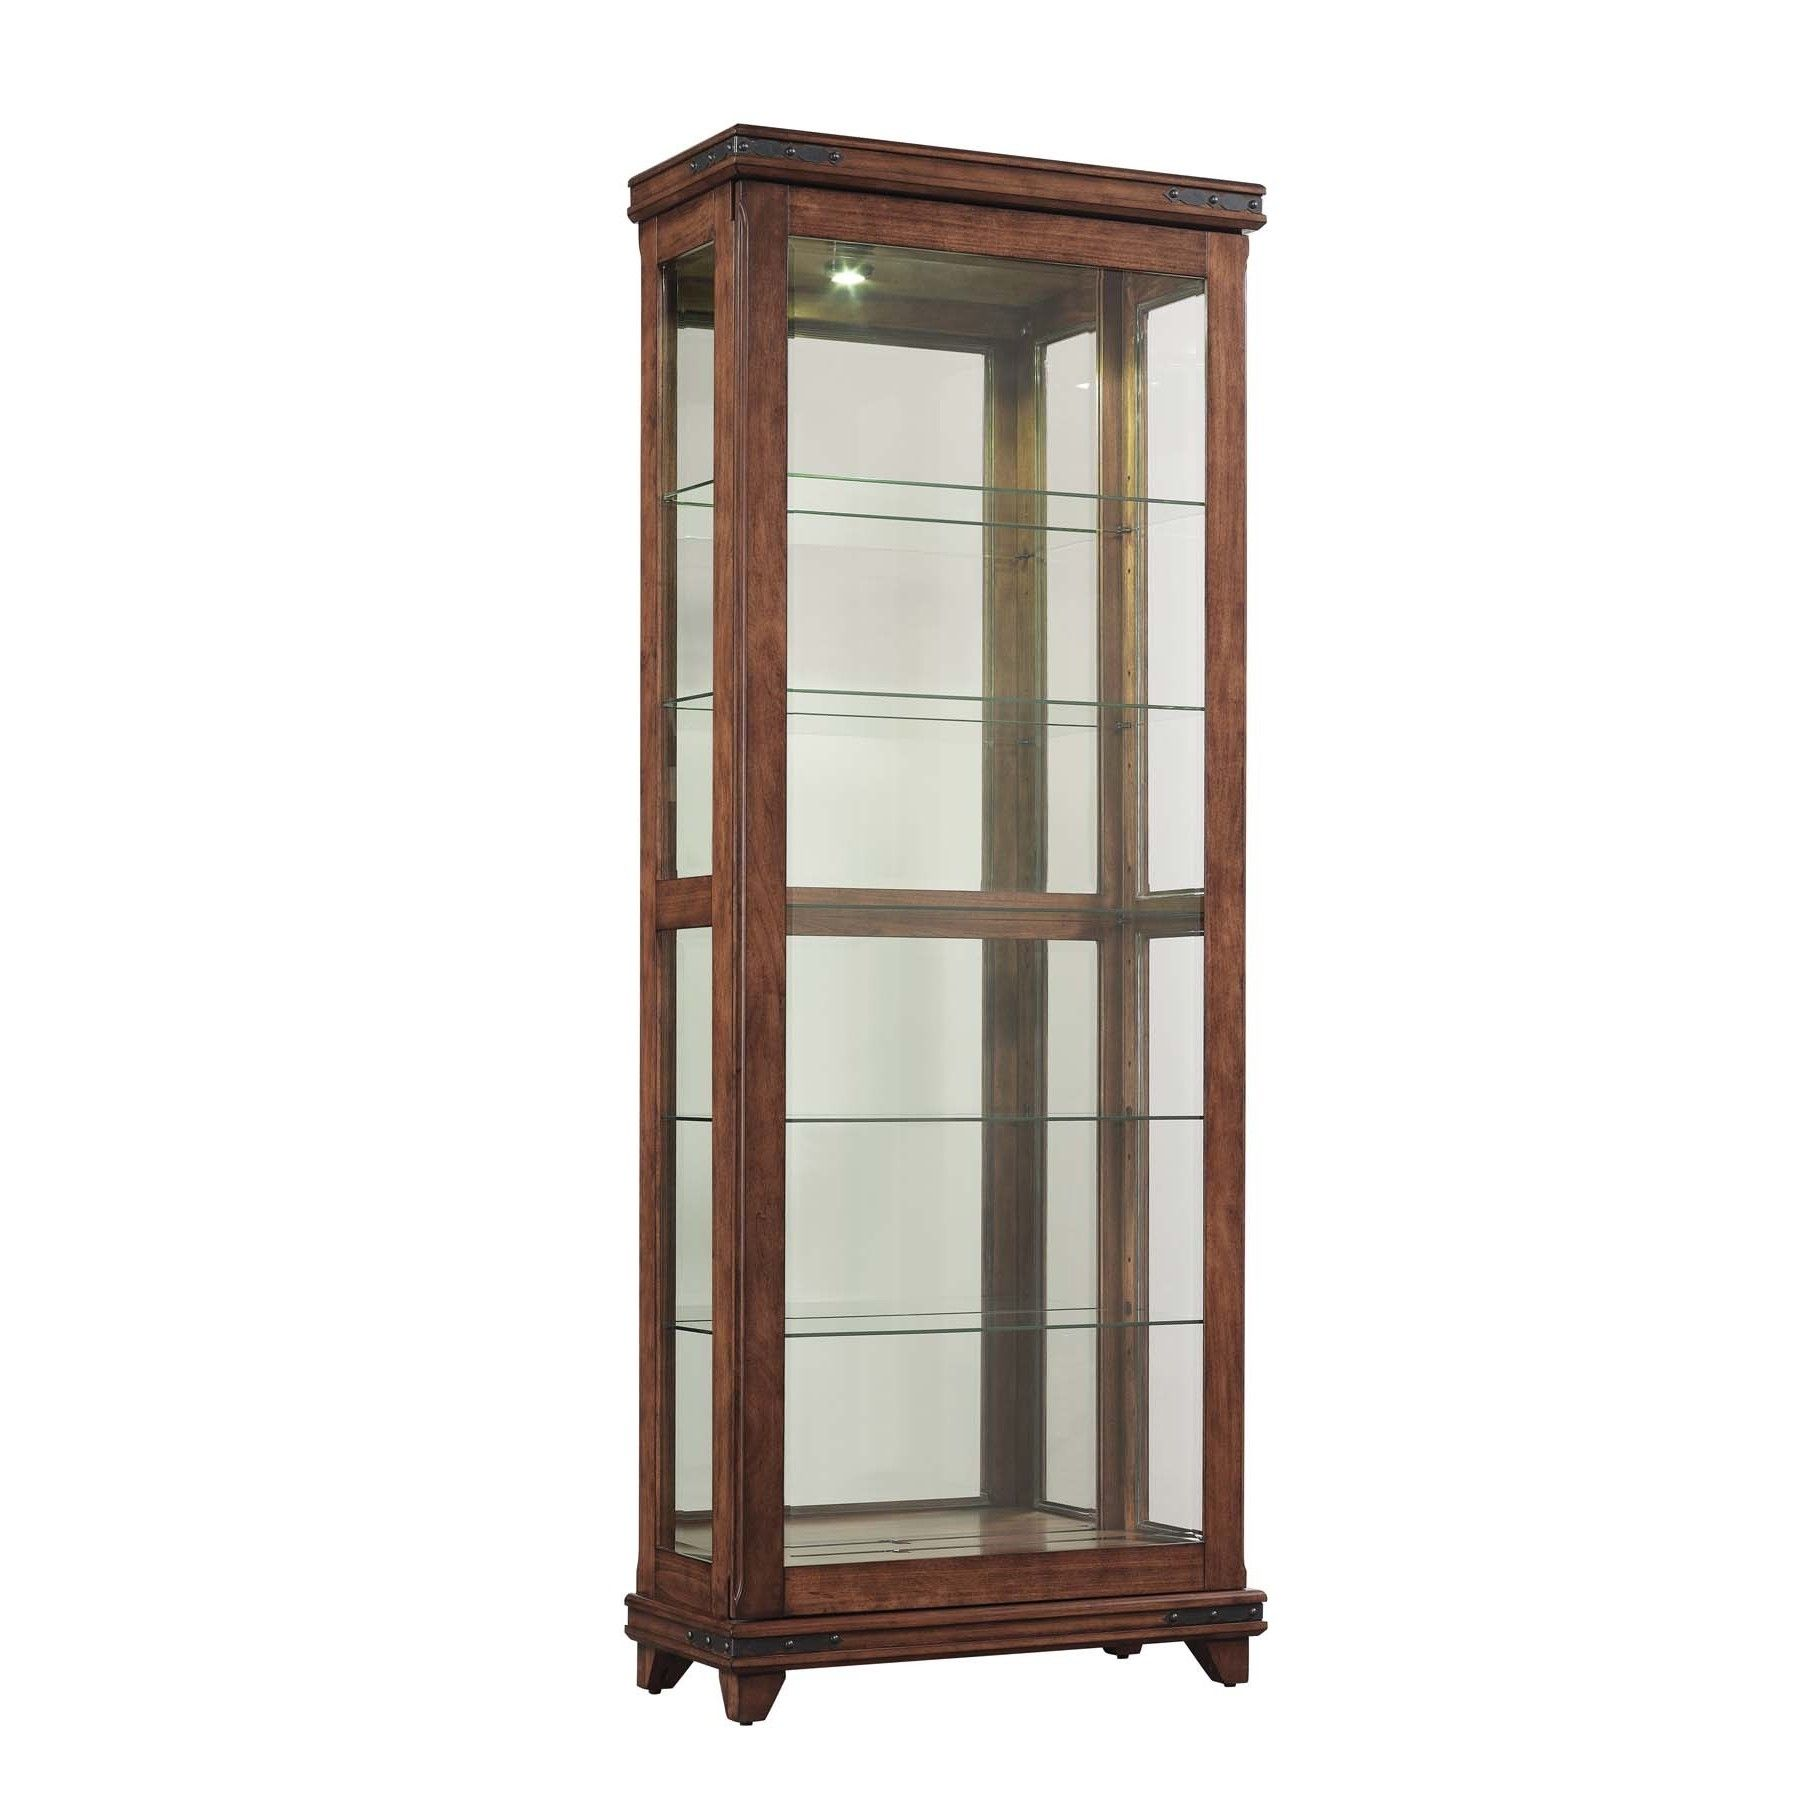 98 Curio Display Cabinets Dining Room Furniture Black Painted